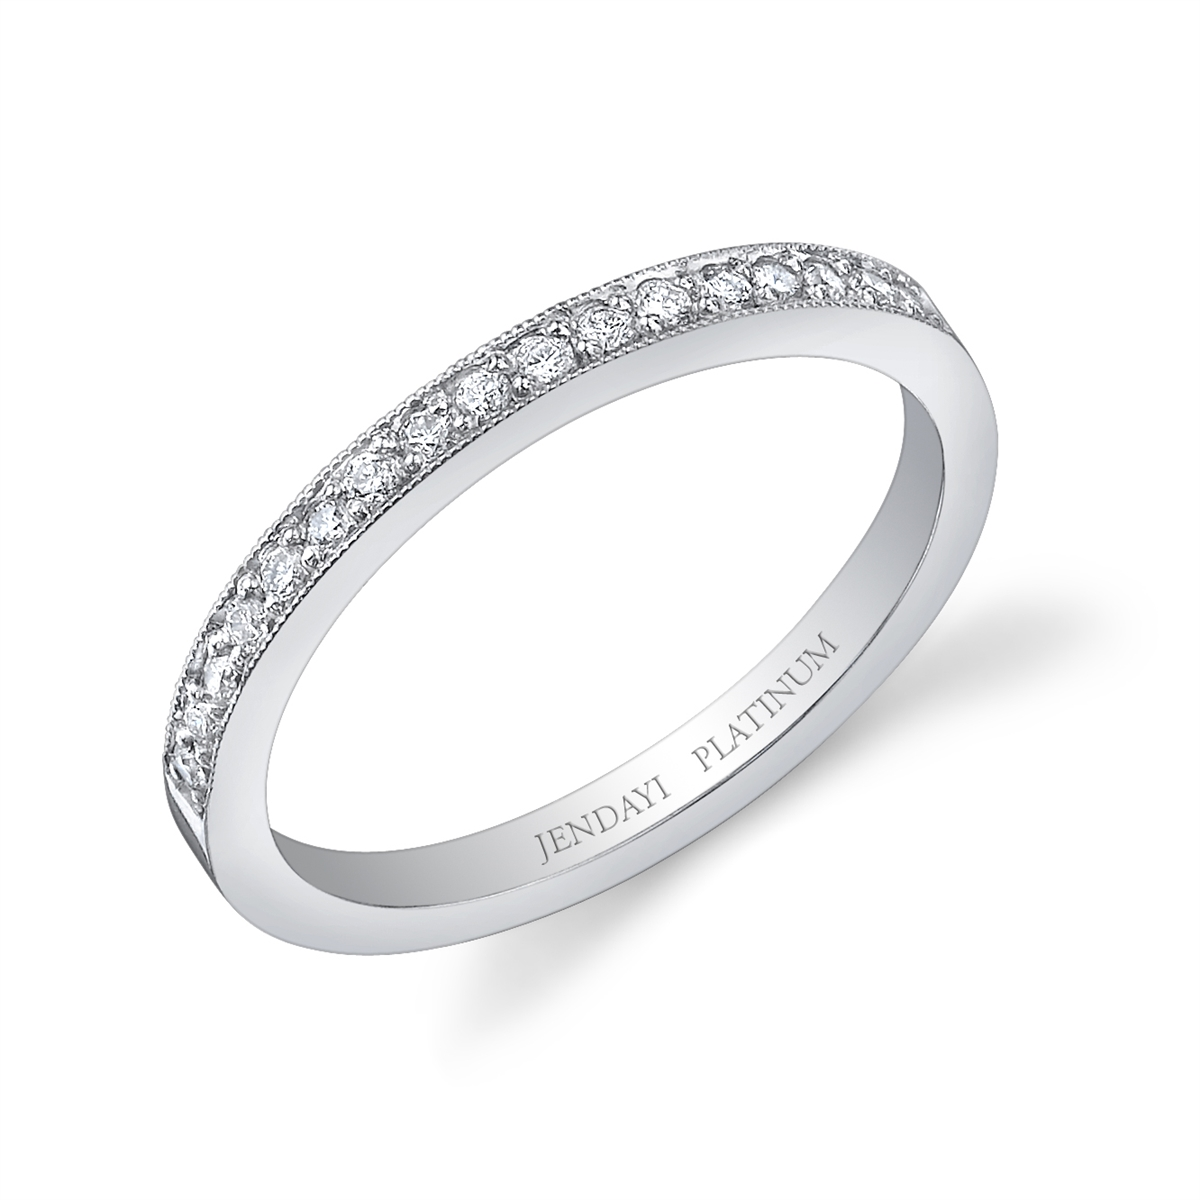 goldsmiths hammered bands wedding band mccaul platinum